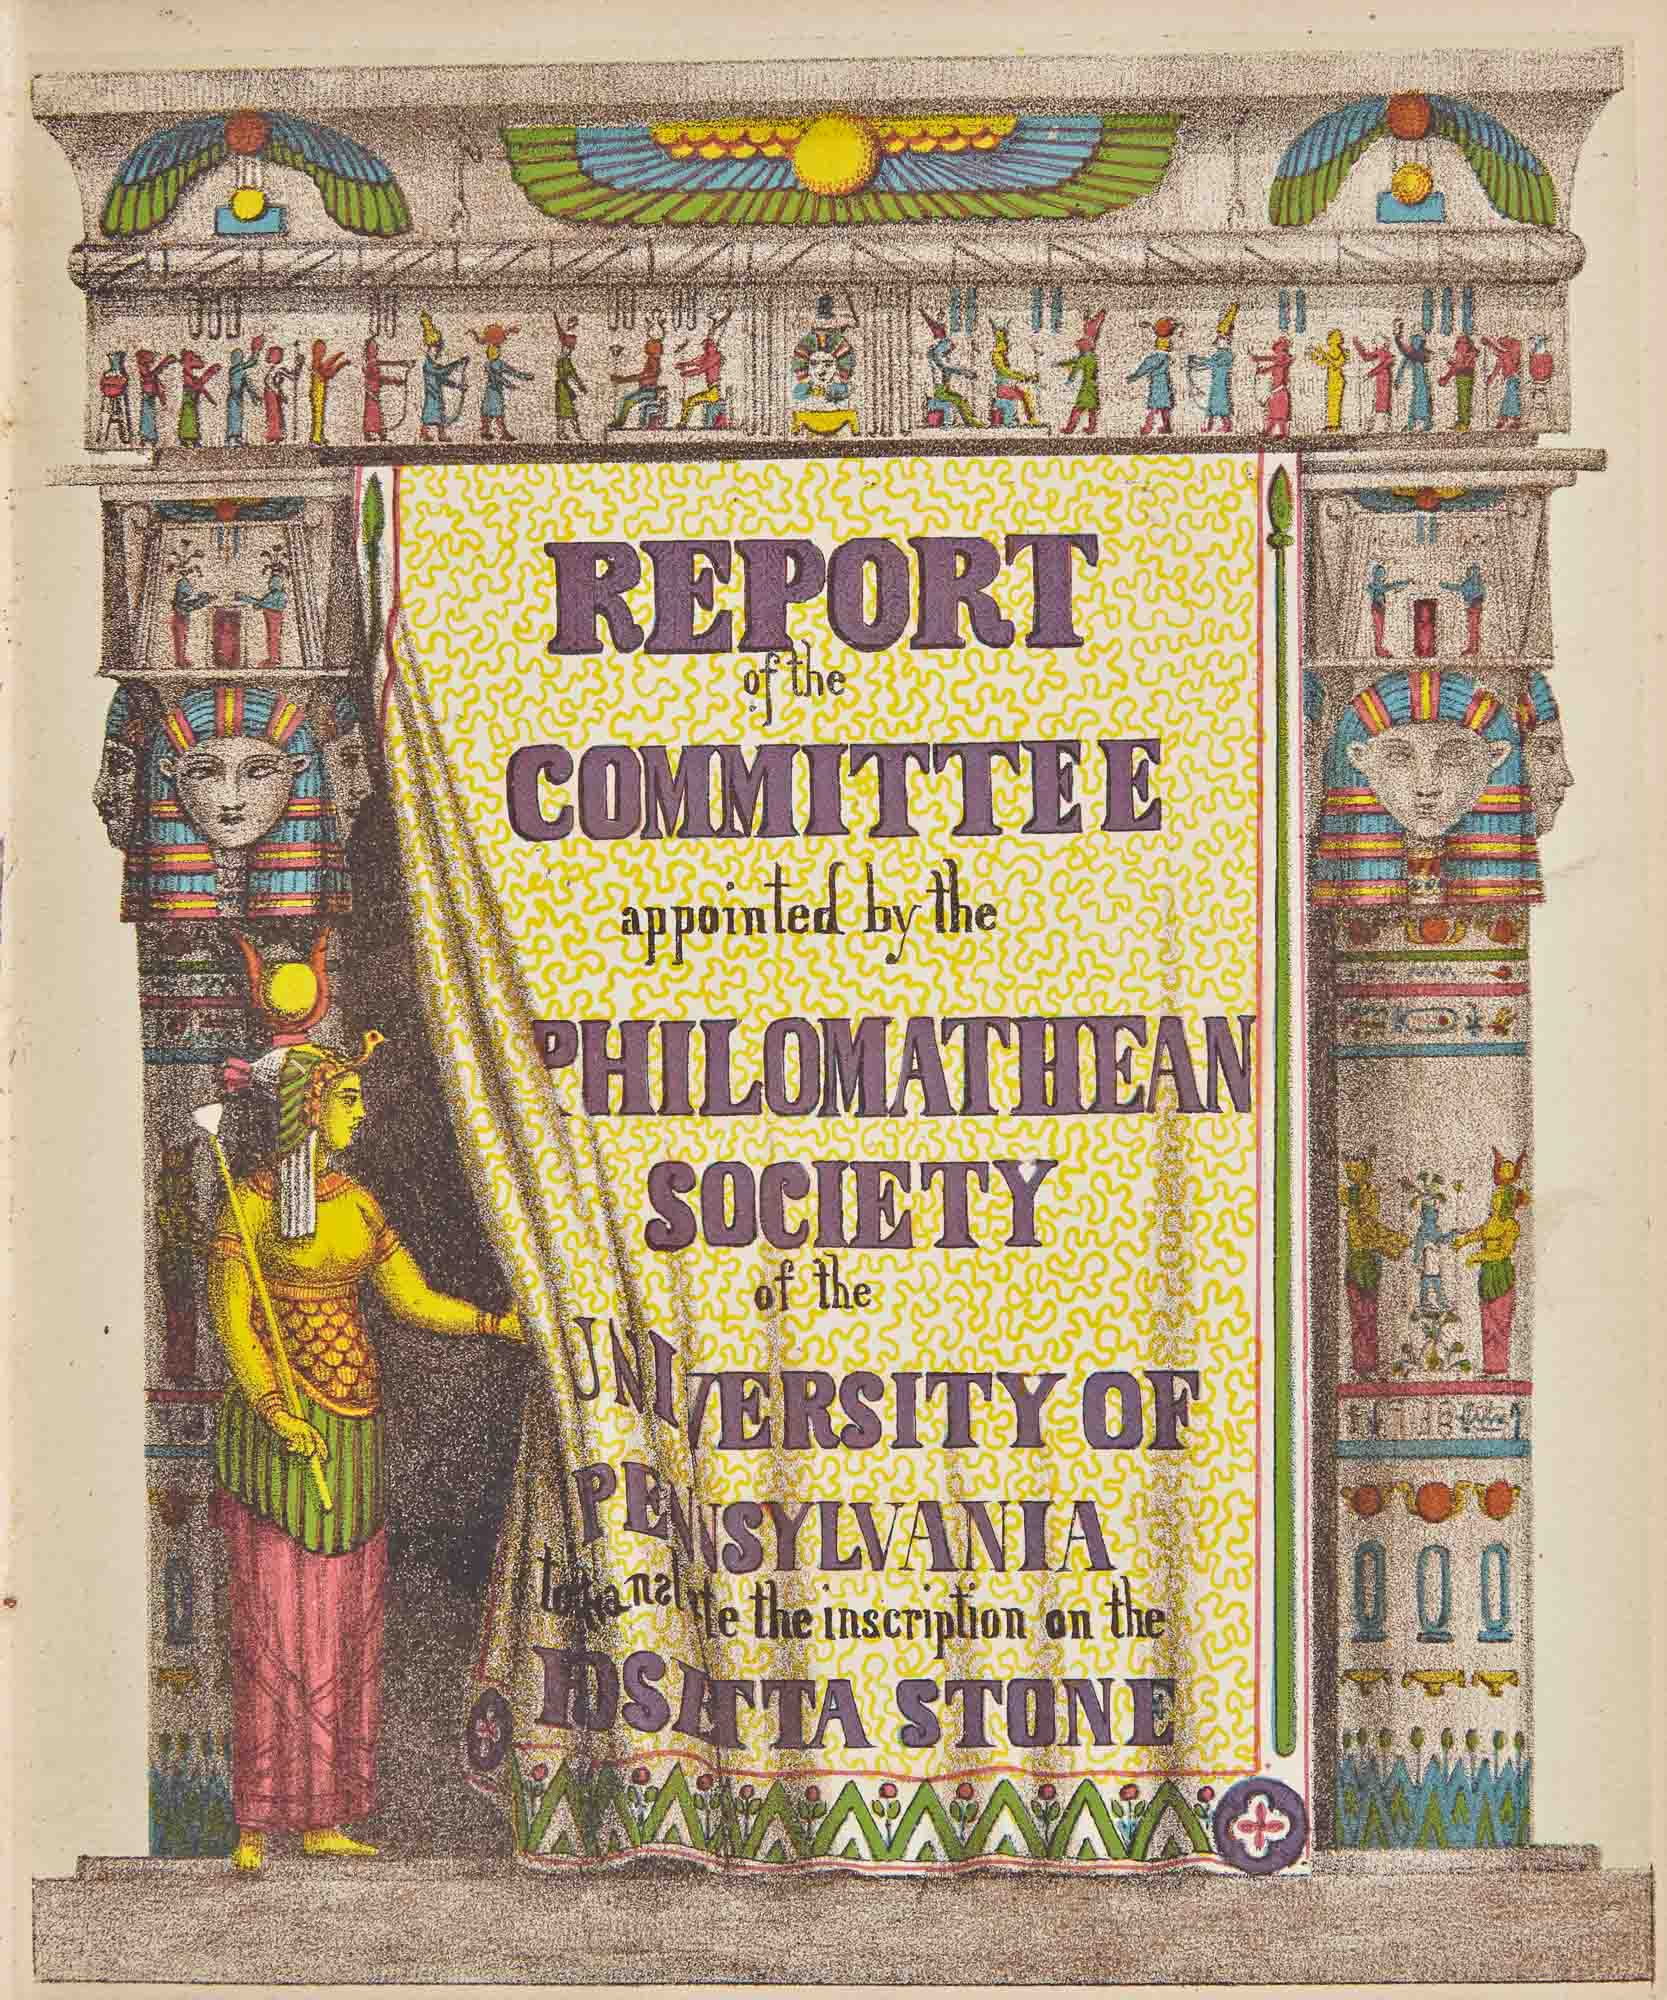 Lot image - [ROSETTA STONE - CHROMOLITHOGRAPHY]  [HALE, CHARLES REUBEN, S. H. JONES & H. MORTON]. Report of the Committee appointed by the Philomathean Society of the University of Pennsylvania to translate the inscription on the Rosetta Stone.